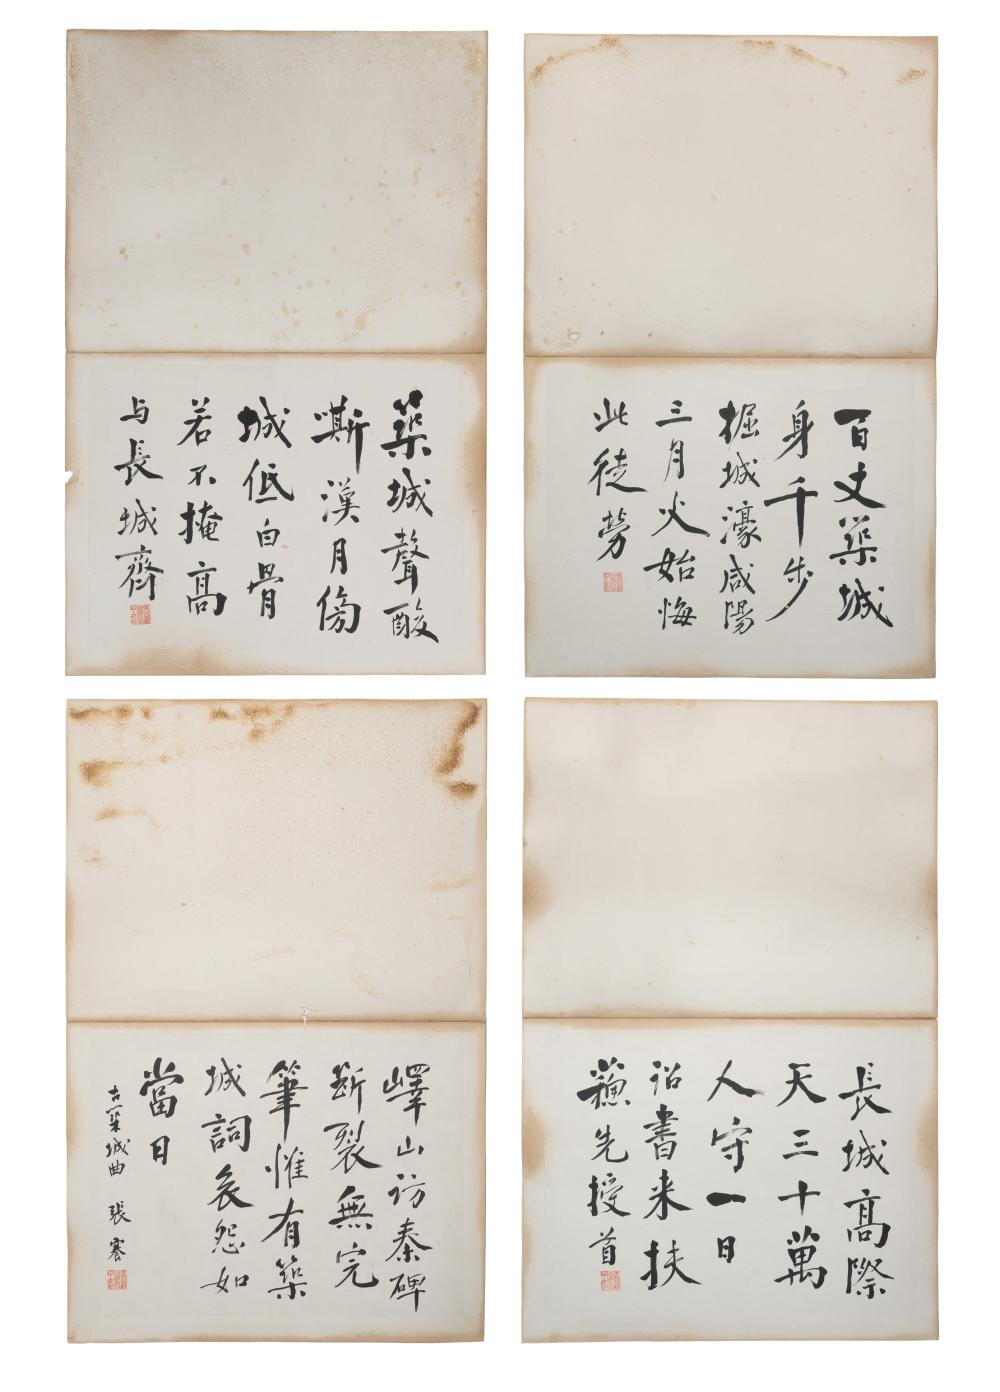 SET OF FOUR CALLIGRAPHIES BY ZHANG JIAN